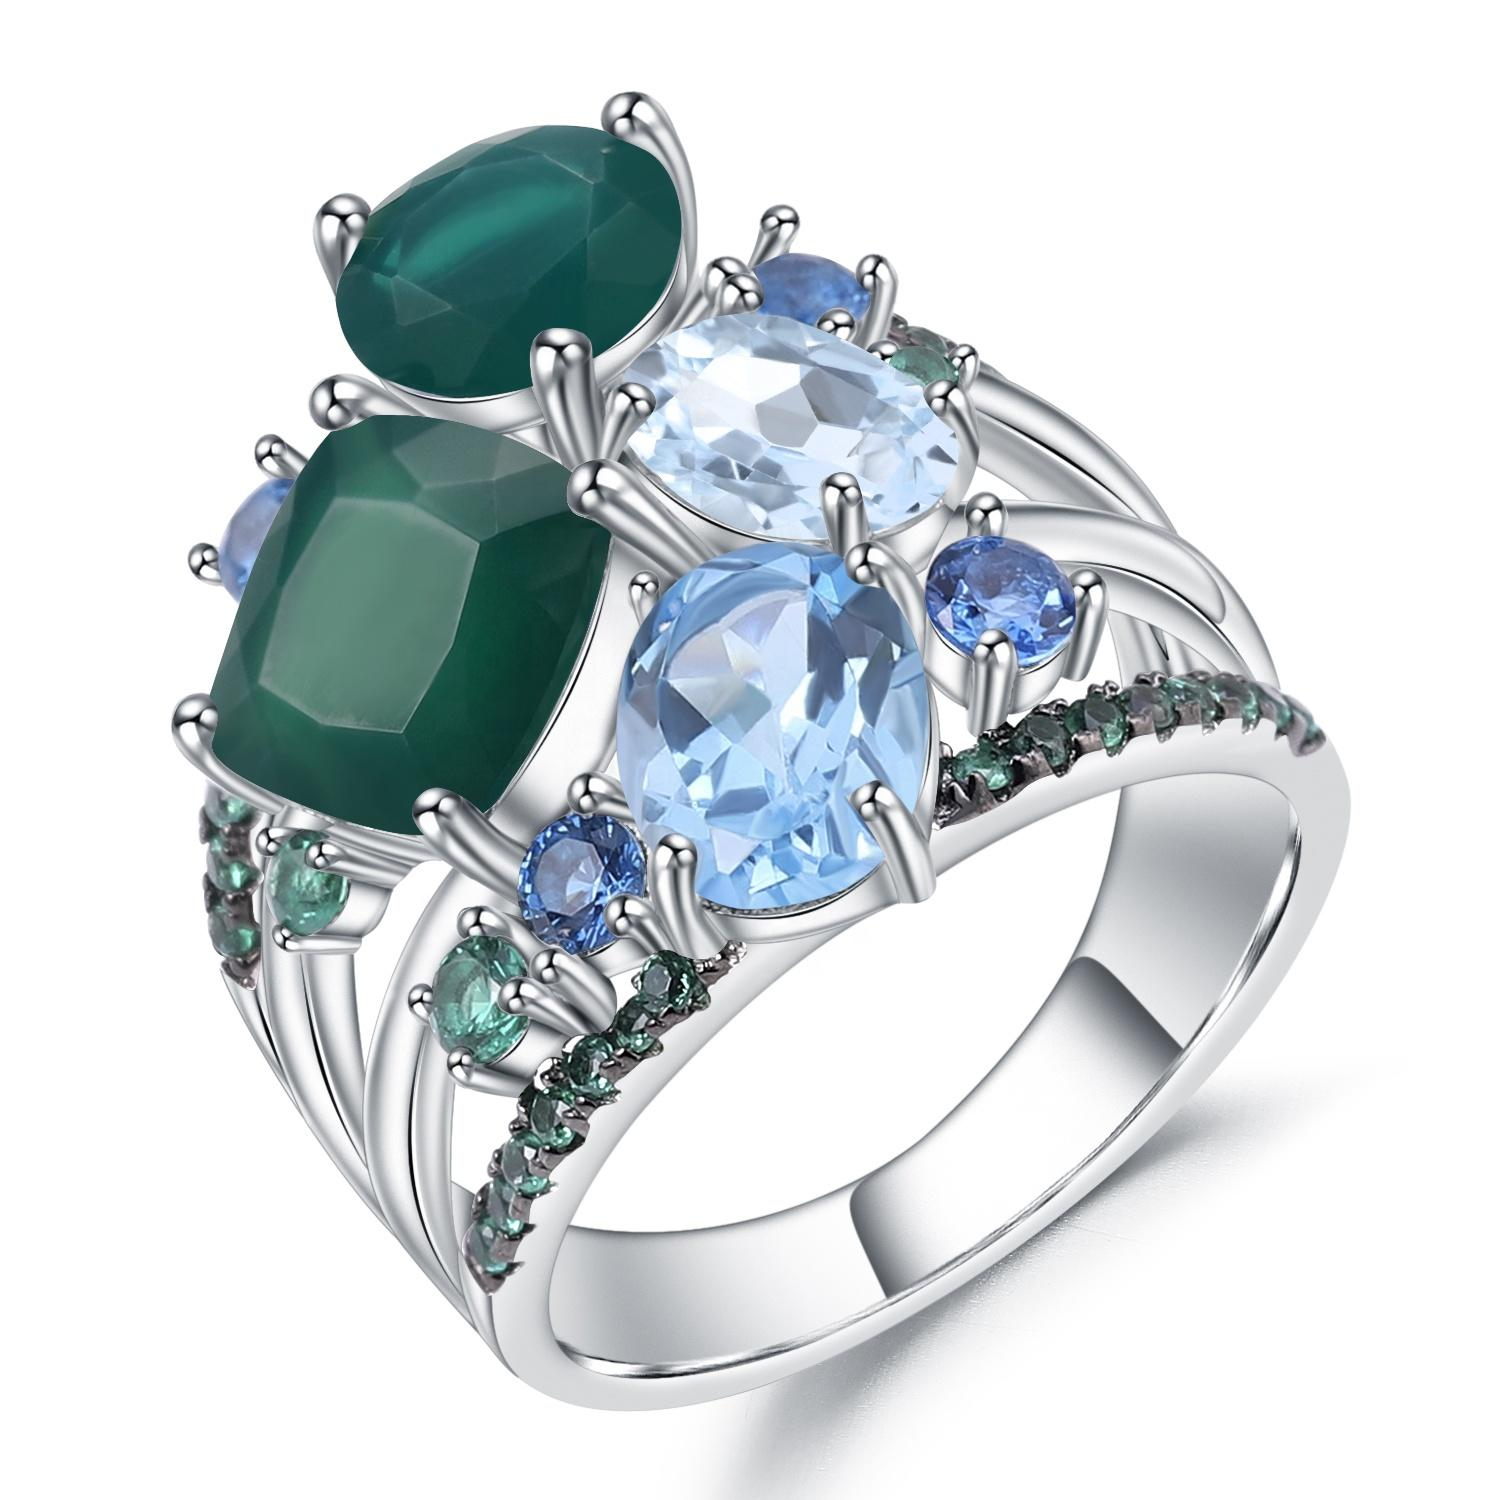 Sapphire rings 925 silver turquoise rings